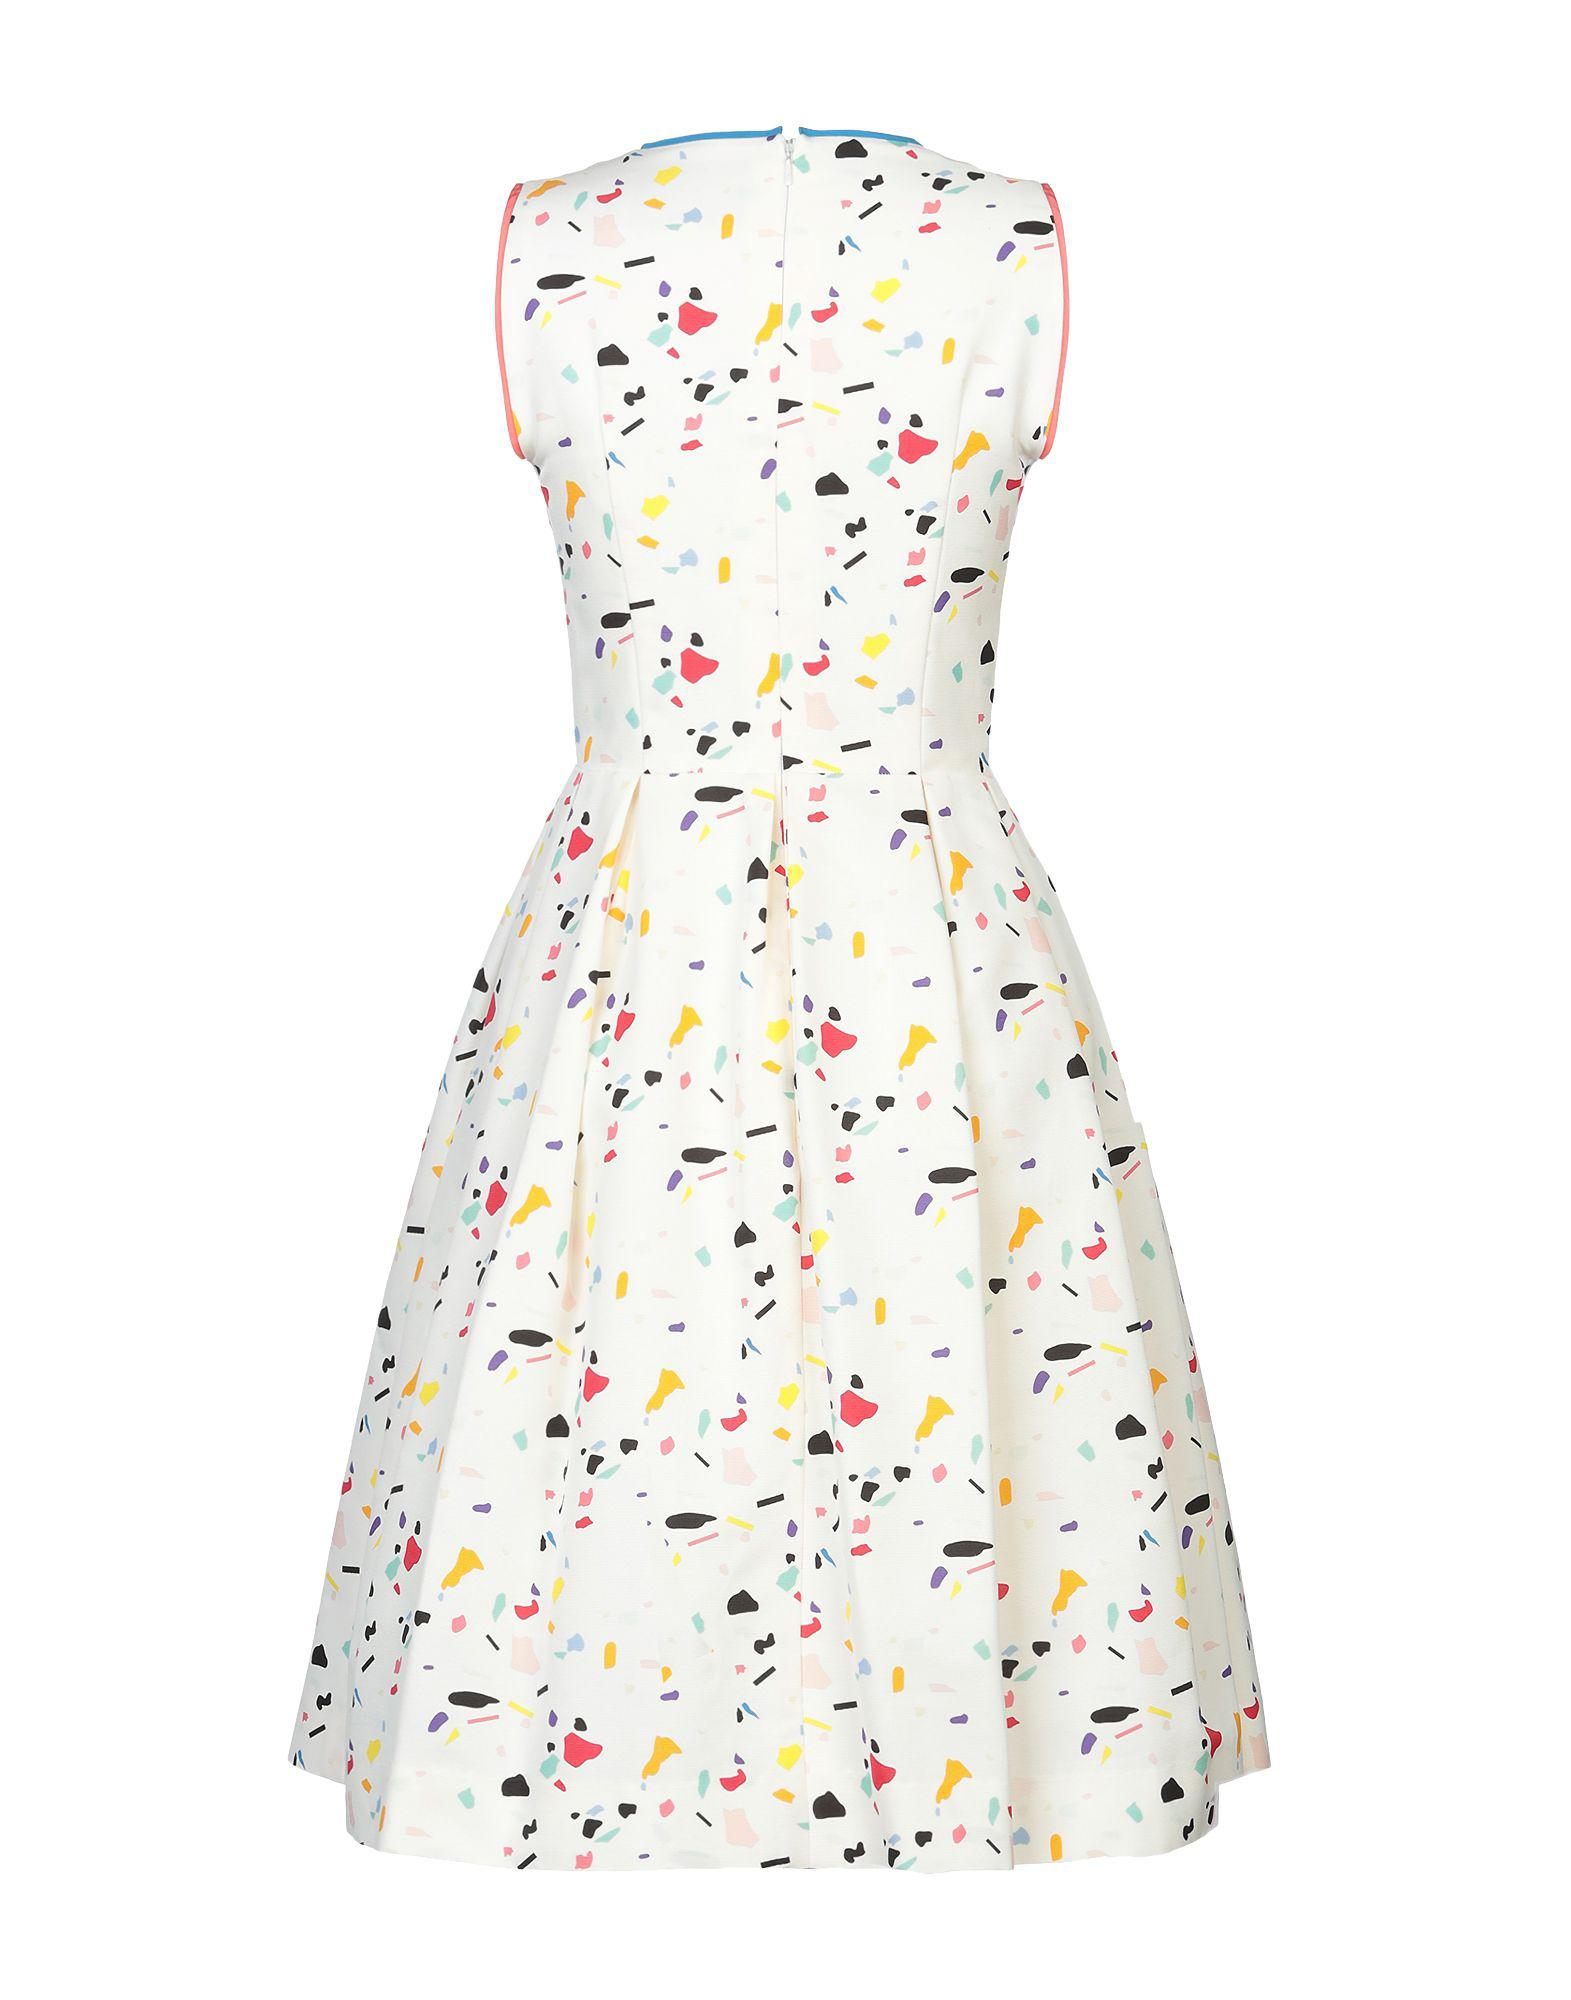 ddc1945bd14 Carolina Herrera Knee-length Dress in White - Save 29% - Lyst